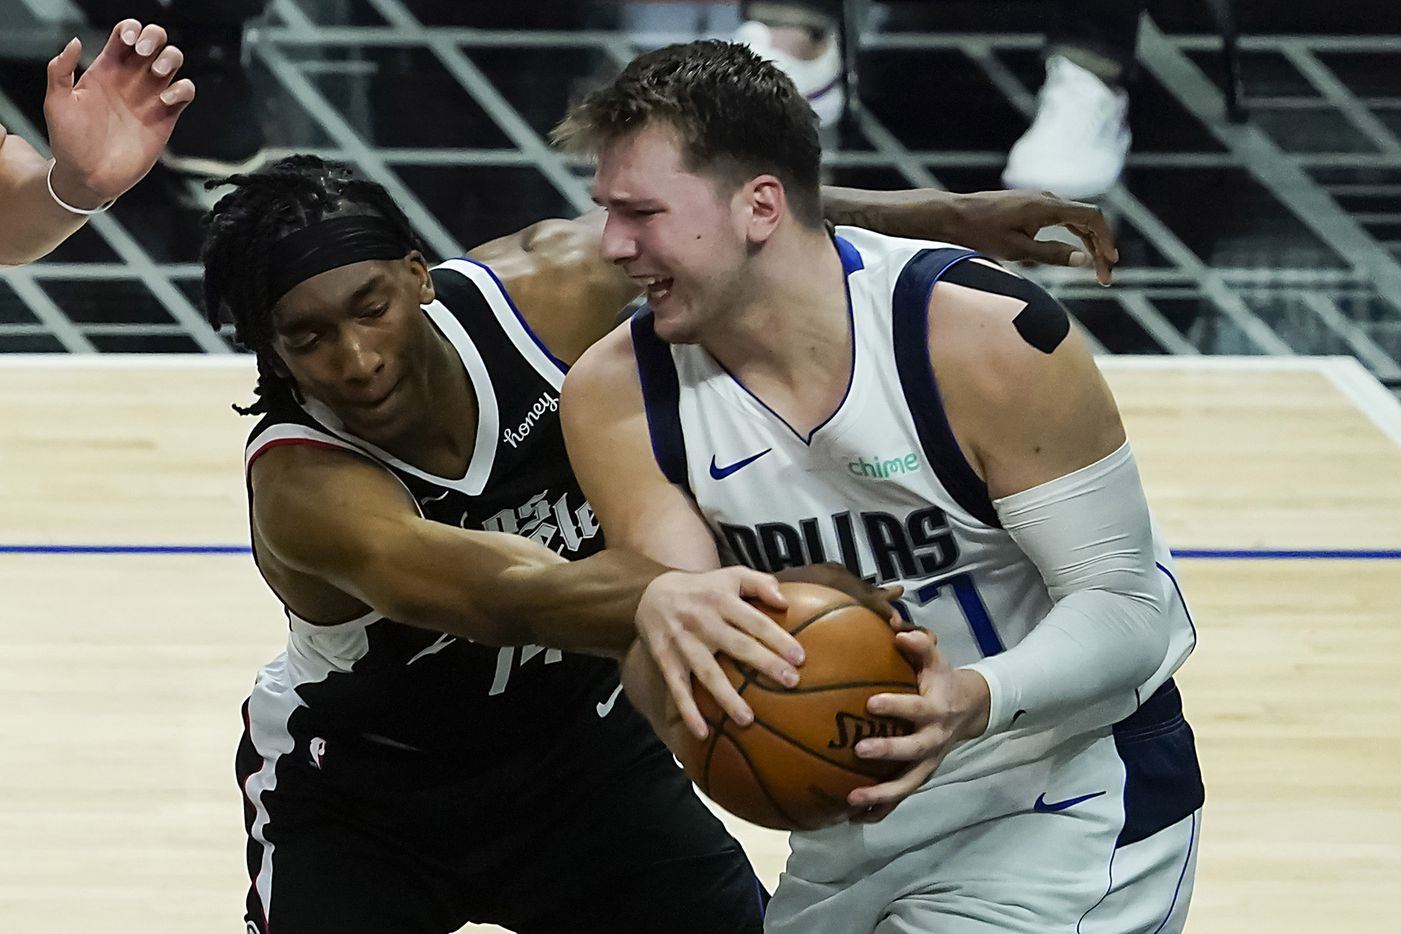 Dallas Mavericks guard Luka Doncic (77) wrestles a rebound away from LA Clippers guard Terance Mann (14) during the fourth quarter of an NBA playoff basketball game at the Staples Center on Wednesday, June 2, 2021, in Los Angeles. The Mavericks won the game 105-100. (Smiley N. Pool/The Dallas Morning News)